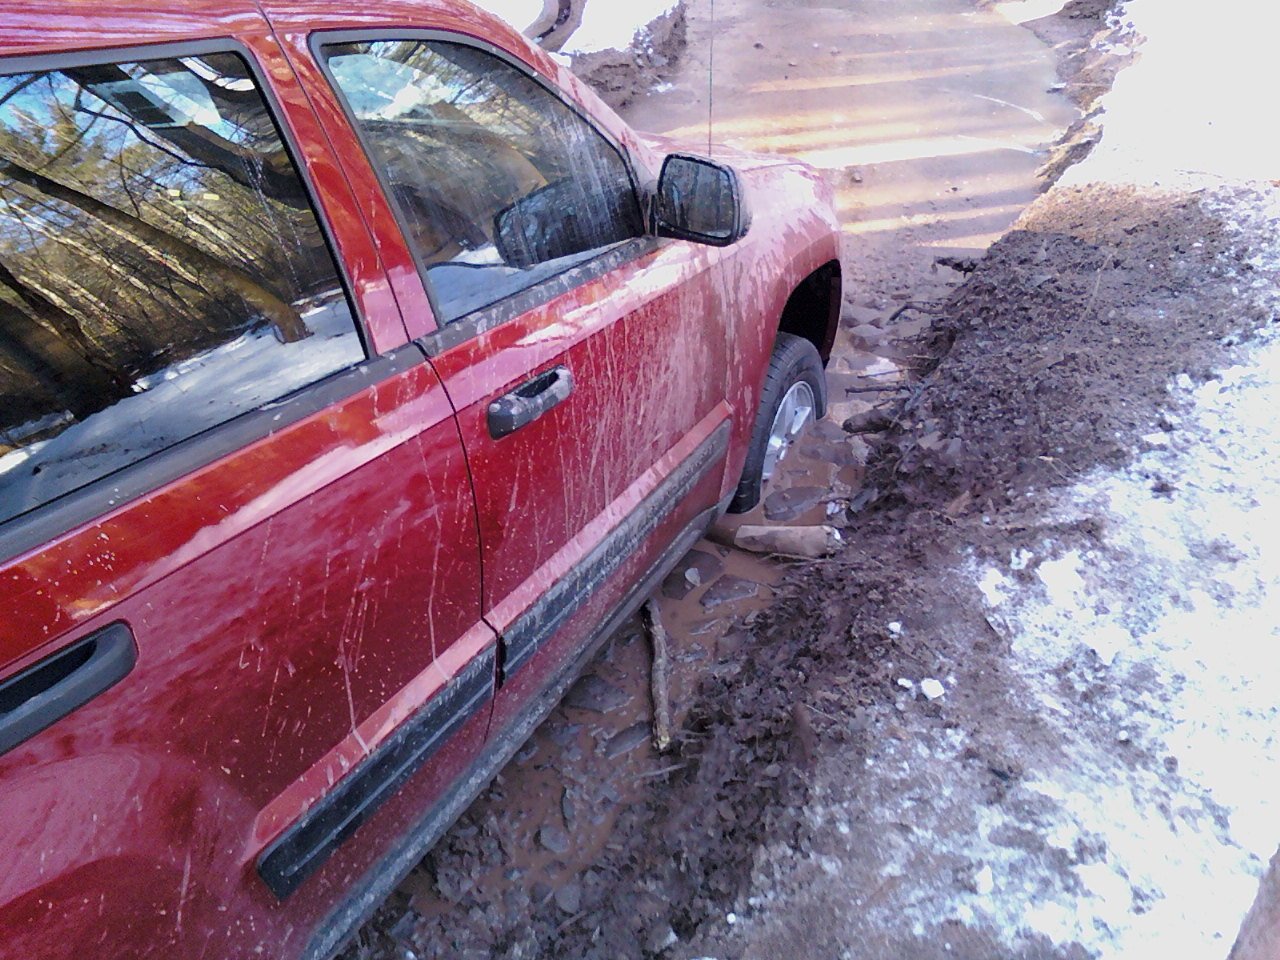 And then the trip went south.  Mud, ice, water, 20*, no cell service and 10 miles from the WV border.  I've seen way too much Wrong Turn for this shit!  Stuck for a few hours til my cousin could go find his friend that had tow hooks.